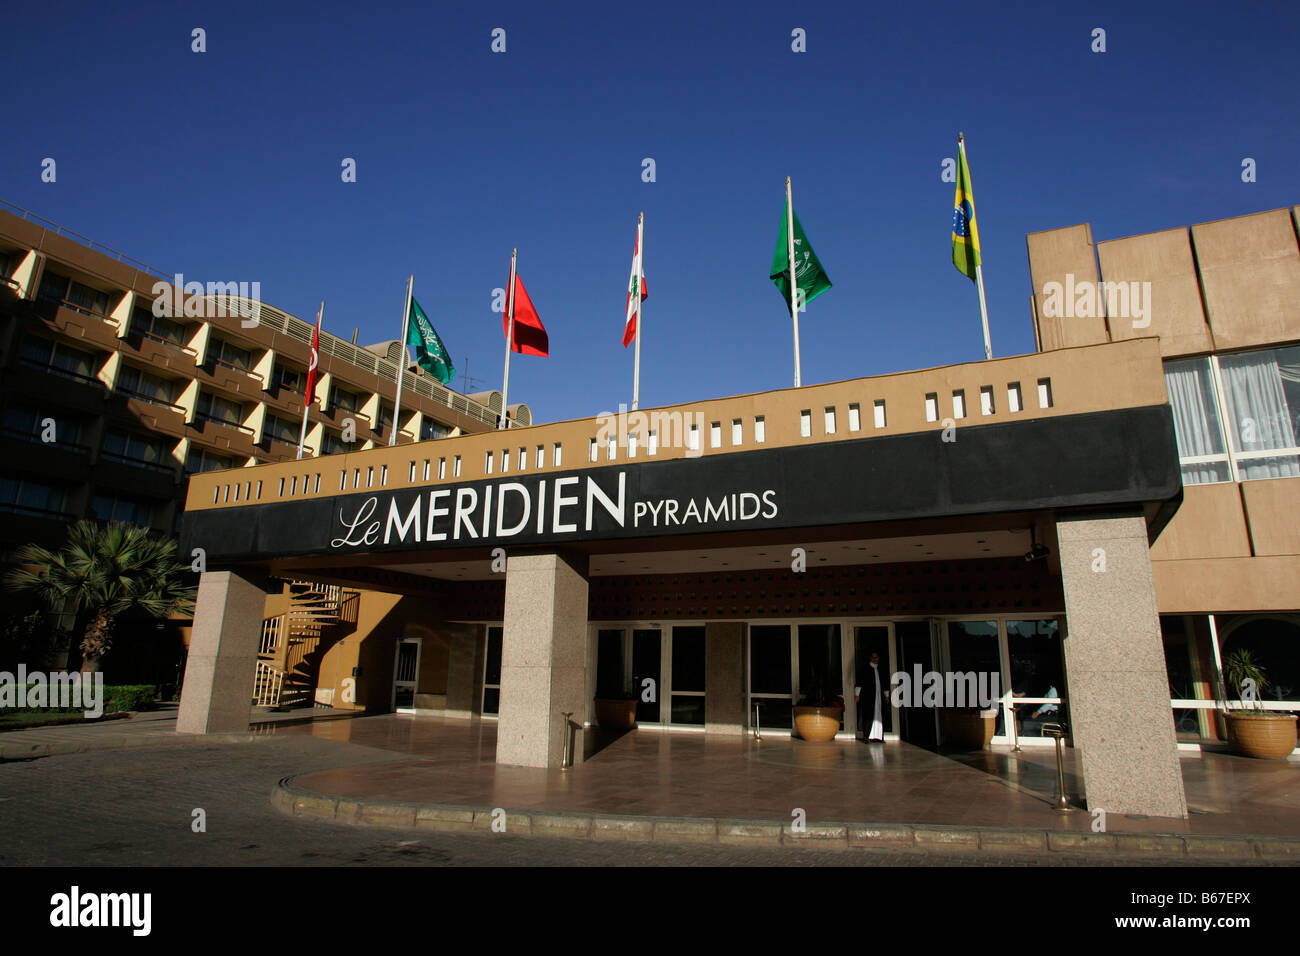 Le Meridien Pyramids Hotel In Cairo Egypt Stock Photo Alamy